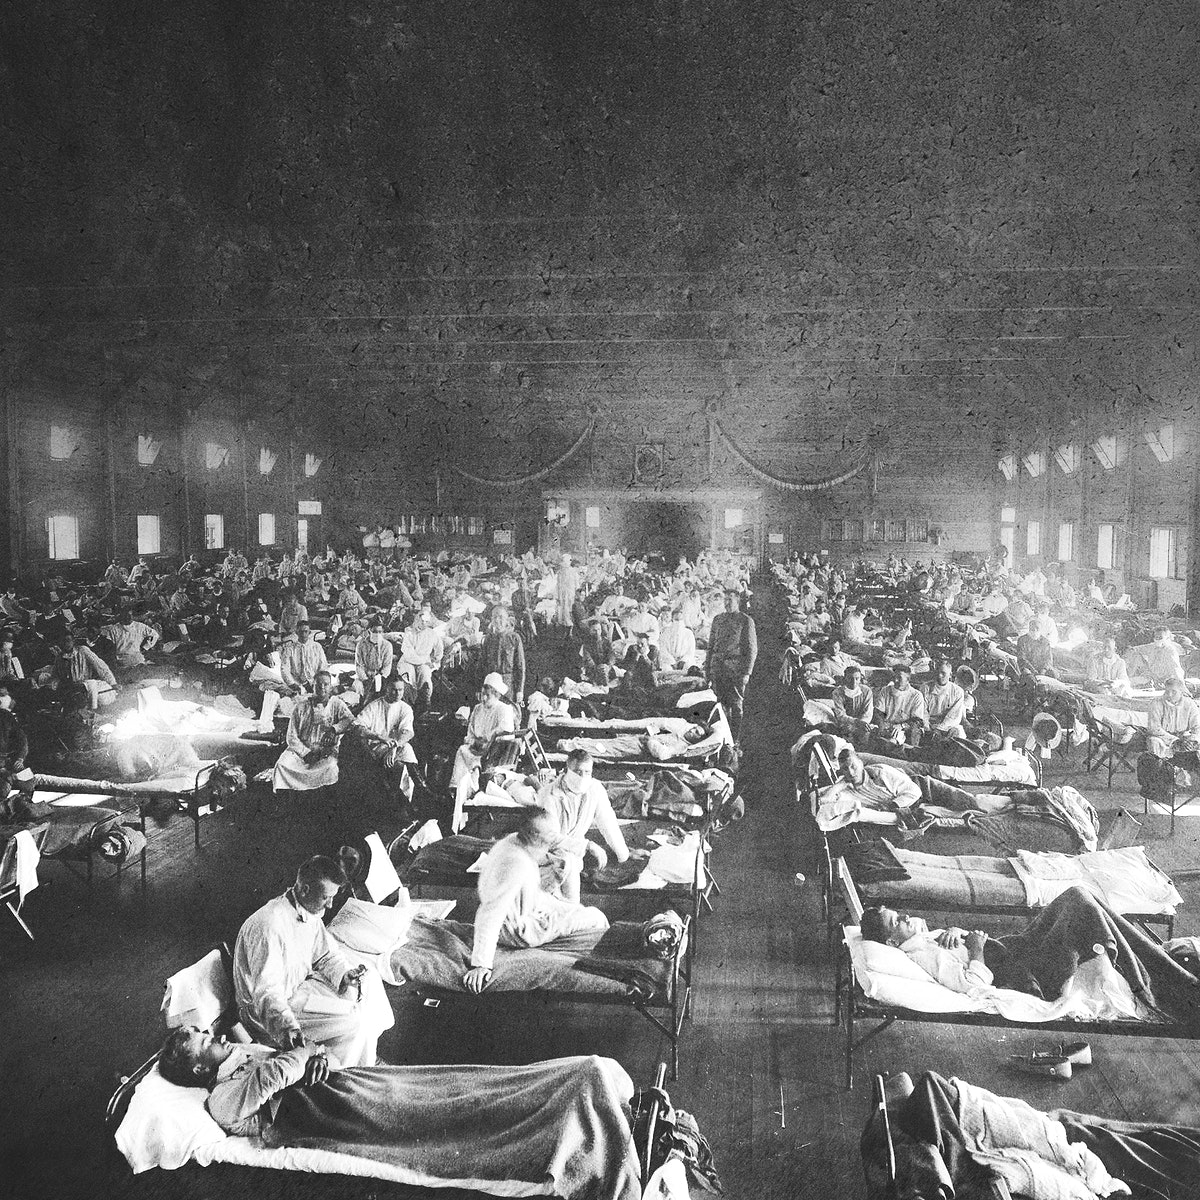 Historical photograph from the Spanish flu pandemic in Europe faded background